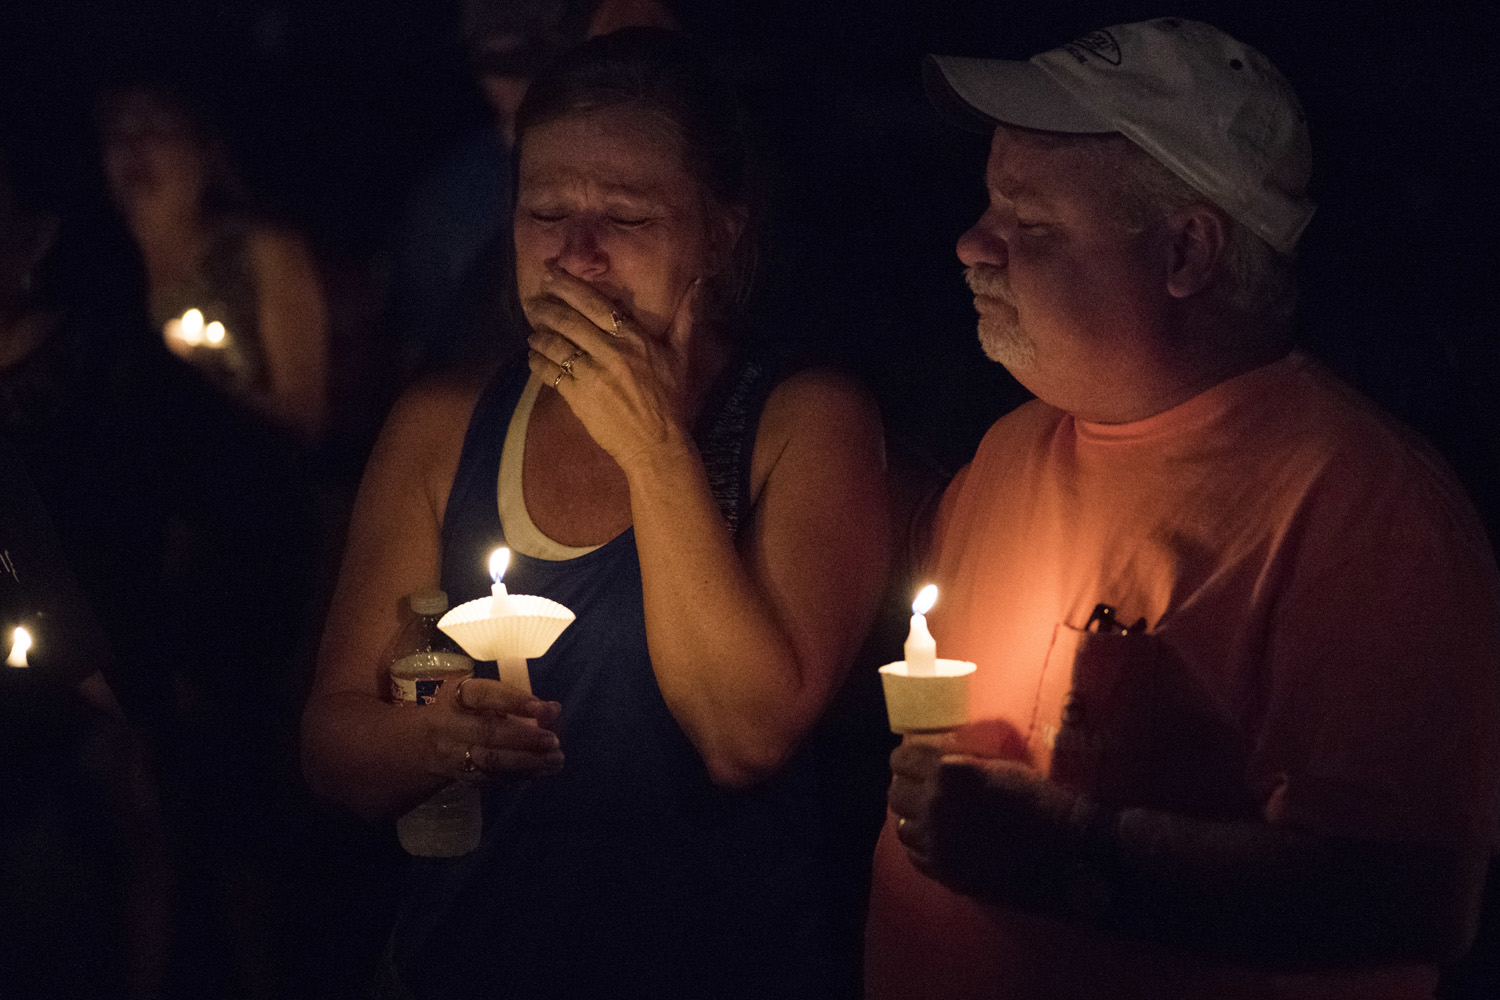 Mourners participate in a candlelight vigil for the victims of a fatal shooting at the First Baptist Church of Sutherland Springs (Darren Abate/AP)